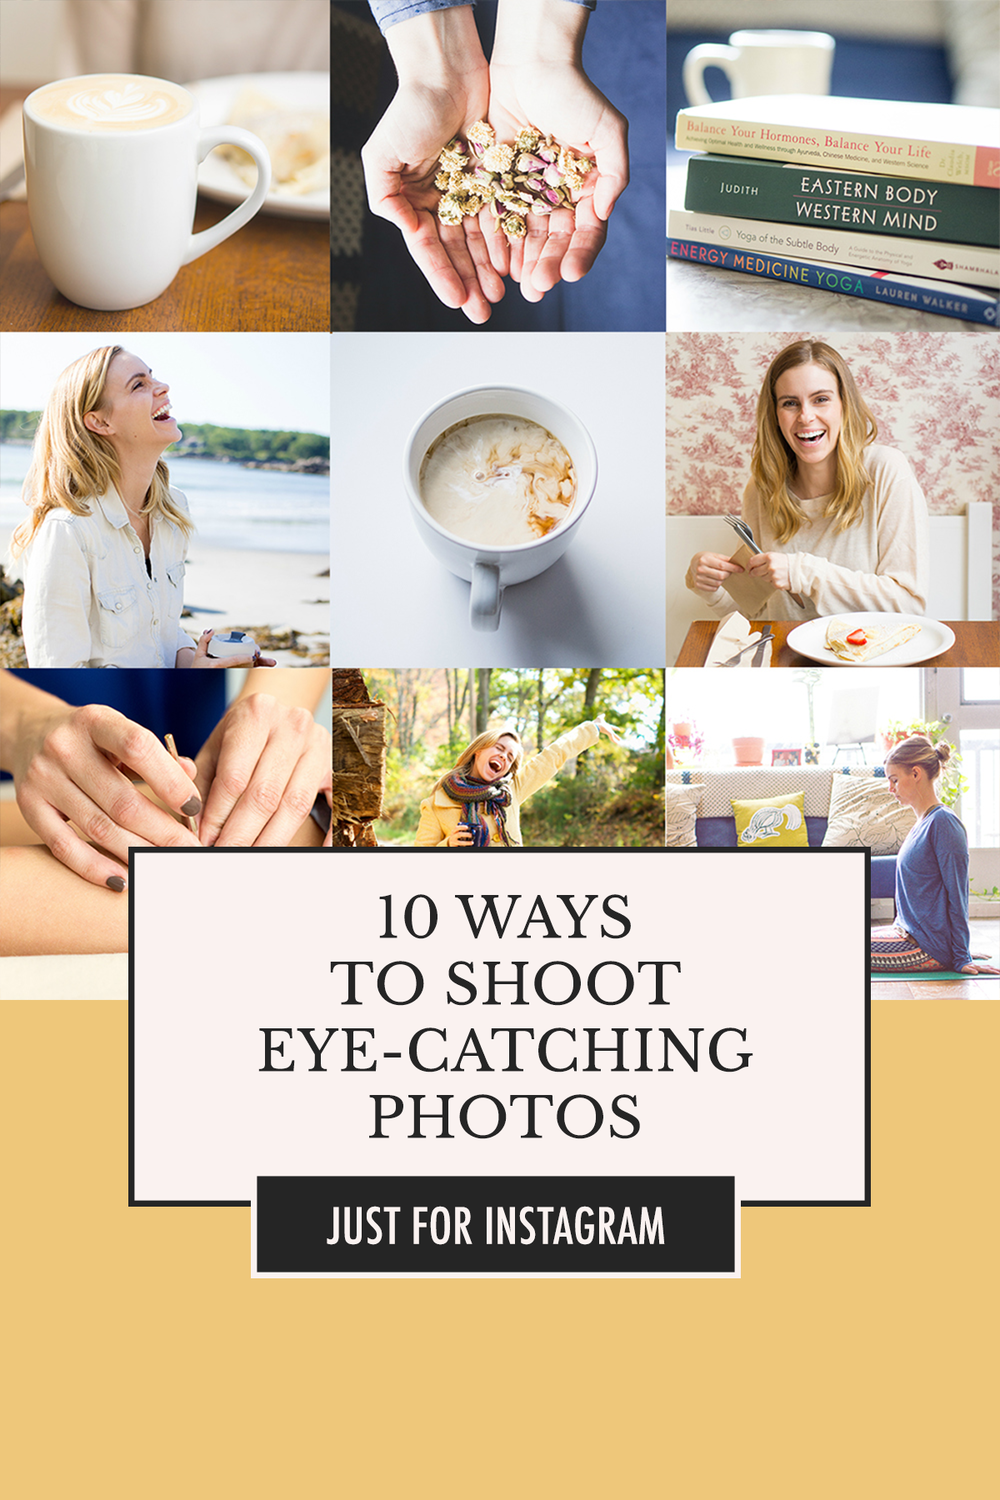 10 Ways to Shoot Eye-Catching Photos Just for Instagram | Increase engagement on the world's largest social media platform | Alexis the Greek blog